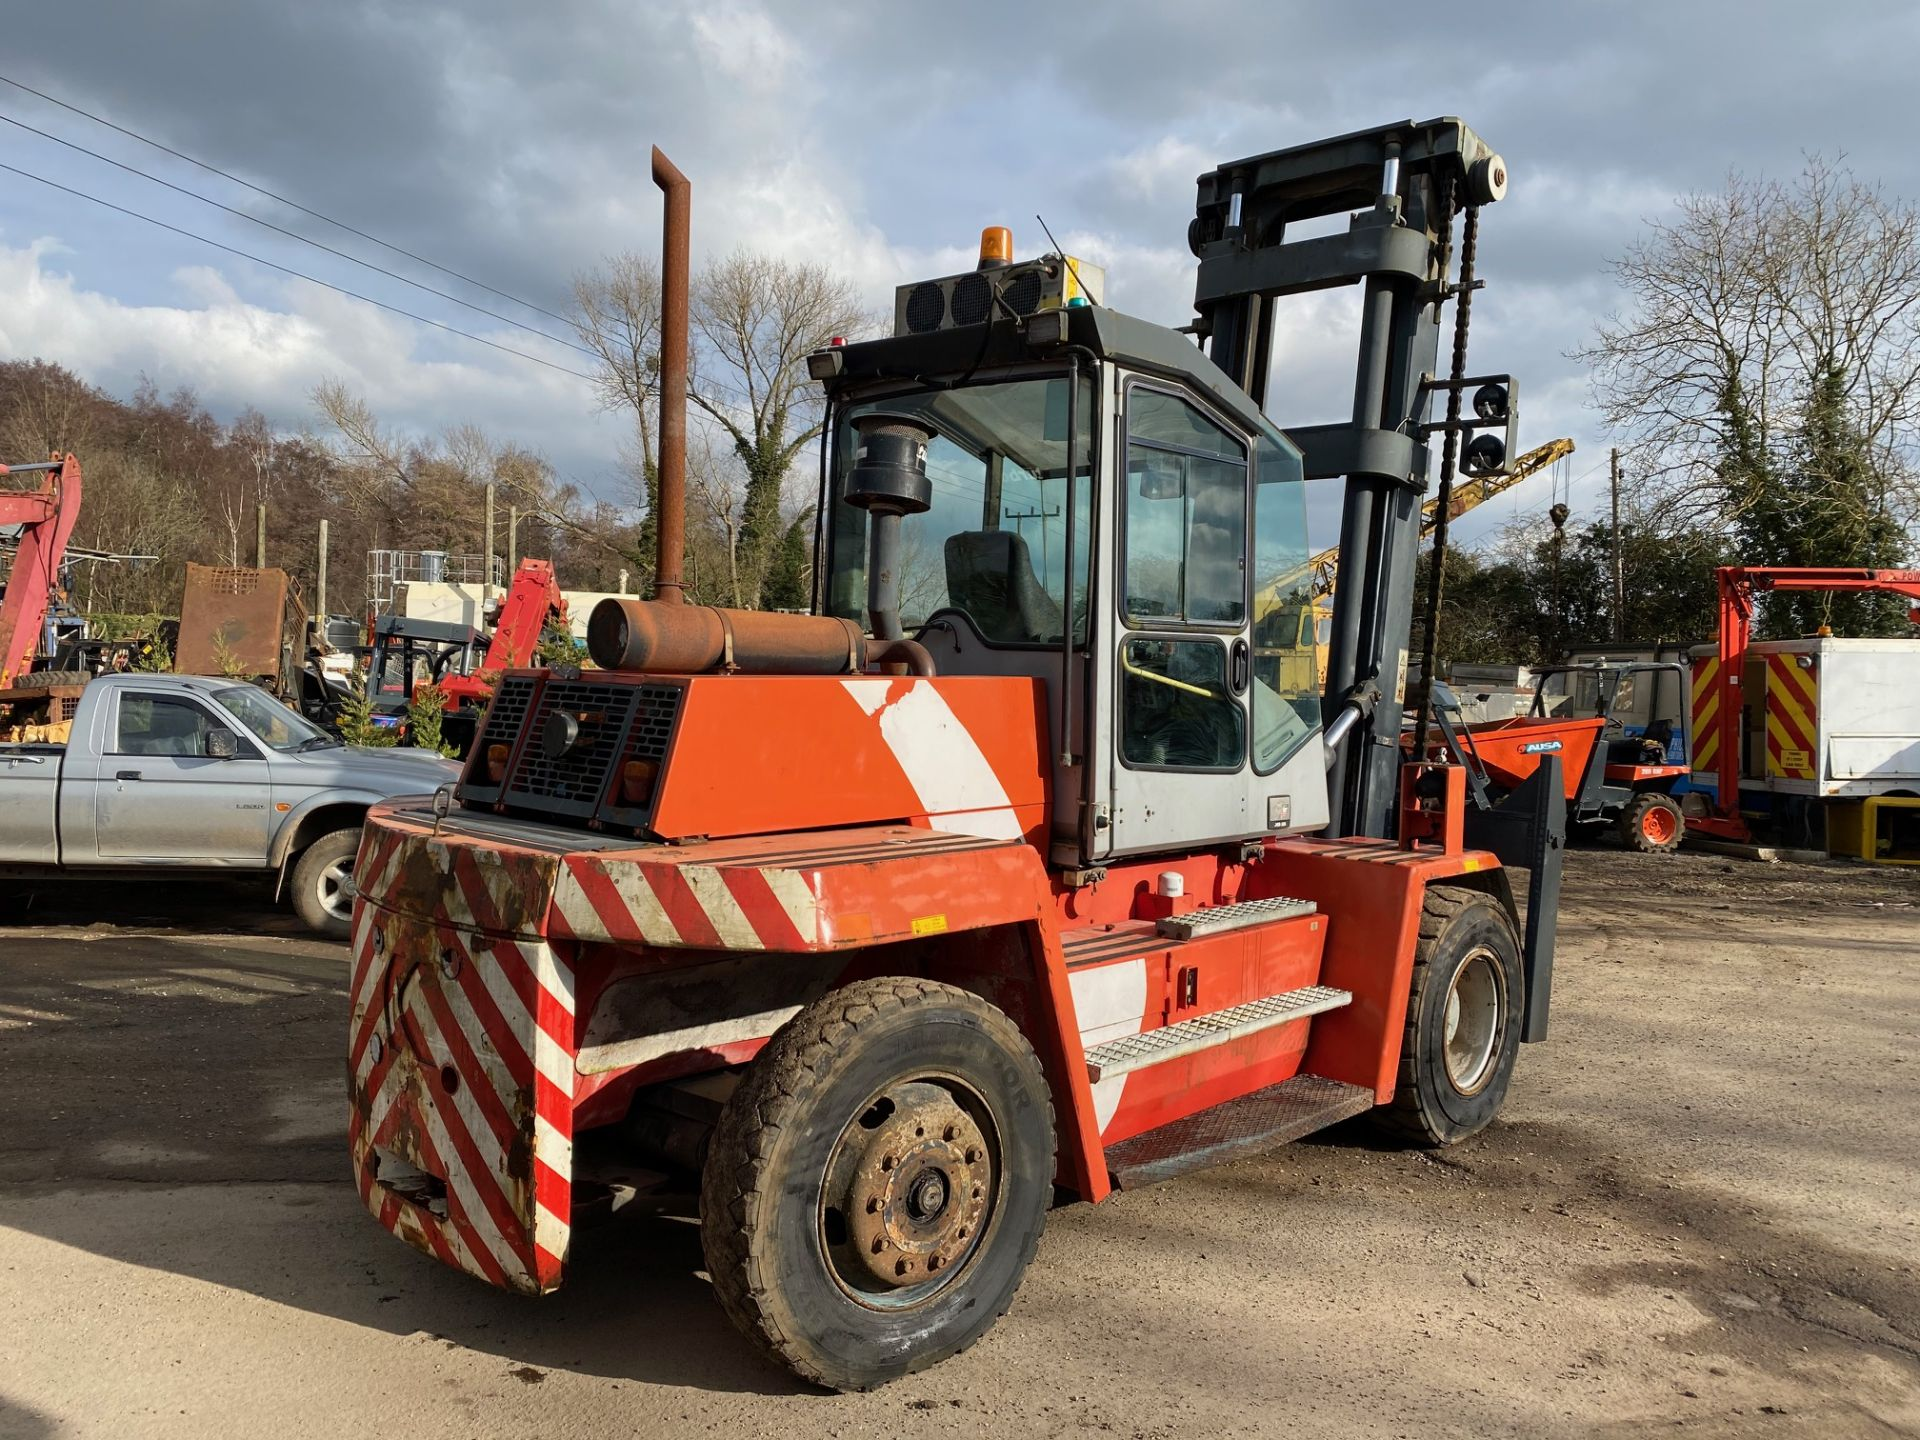 2002 KALMAR DCD100-6 10 TON FORKLIFT, STARTS, DRIVES AND RUNS AS IT SHOULD, THE DOOR IS MISSING - Image 8 of 8